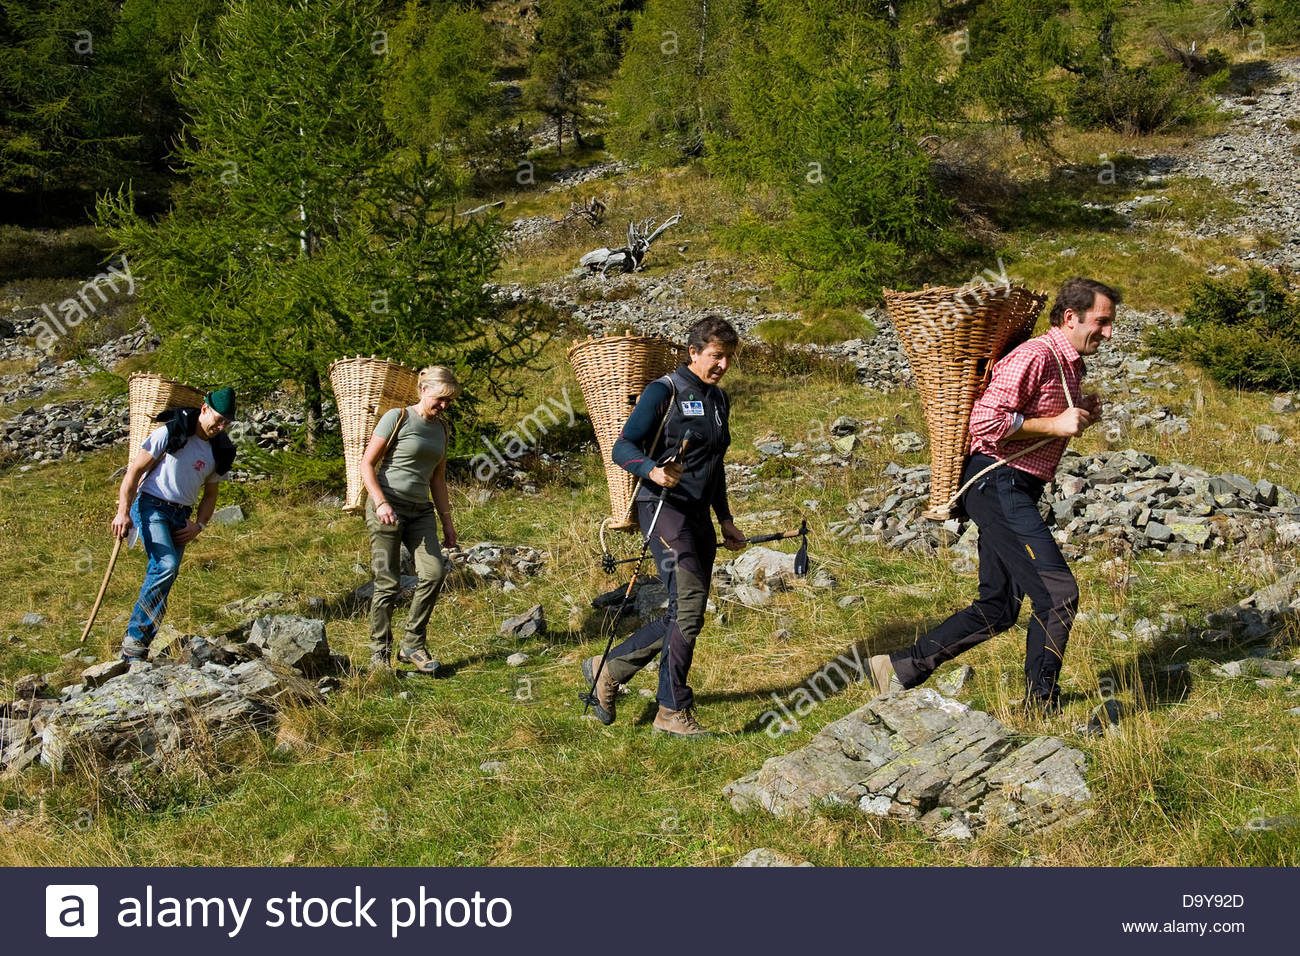 The rebels in the mountains,Brembana valley,Lombardy,Italy Stock Photo